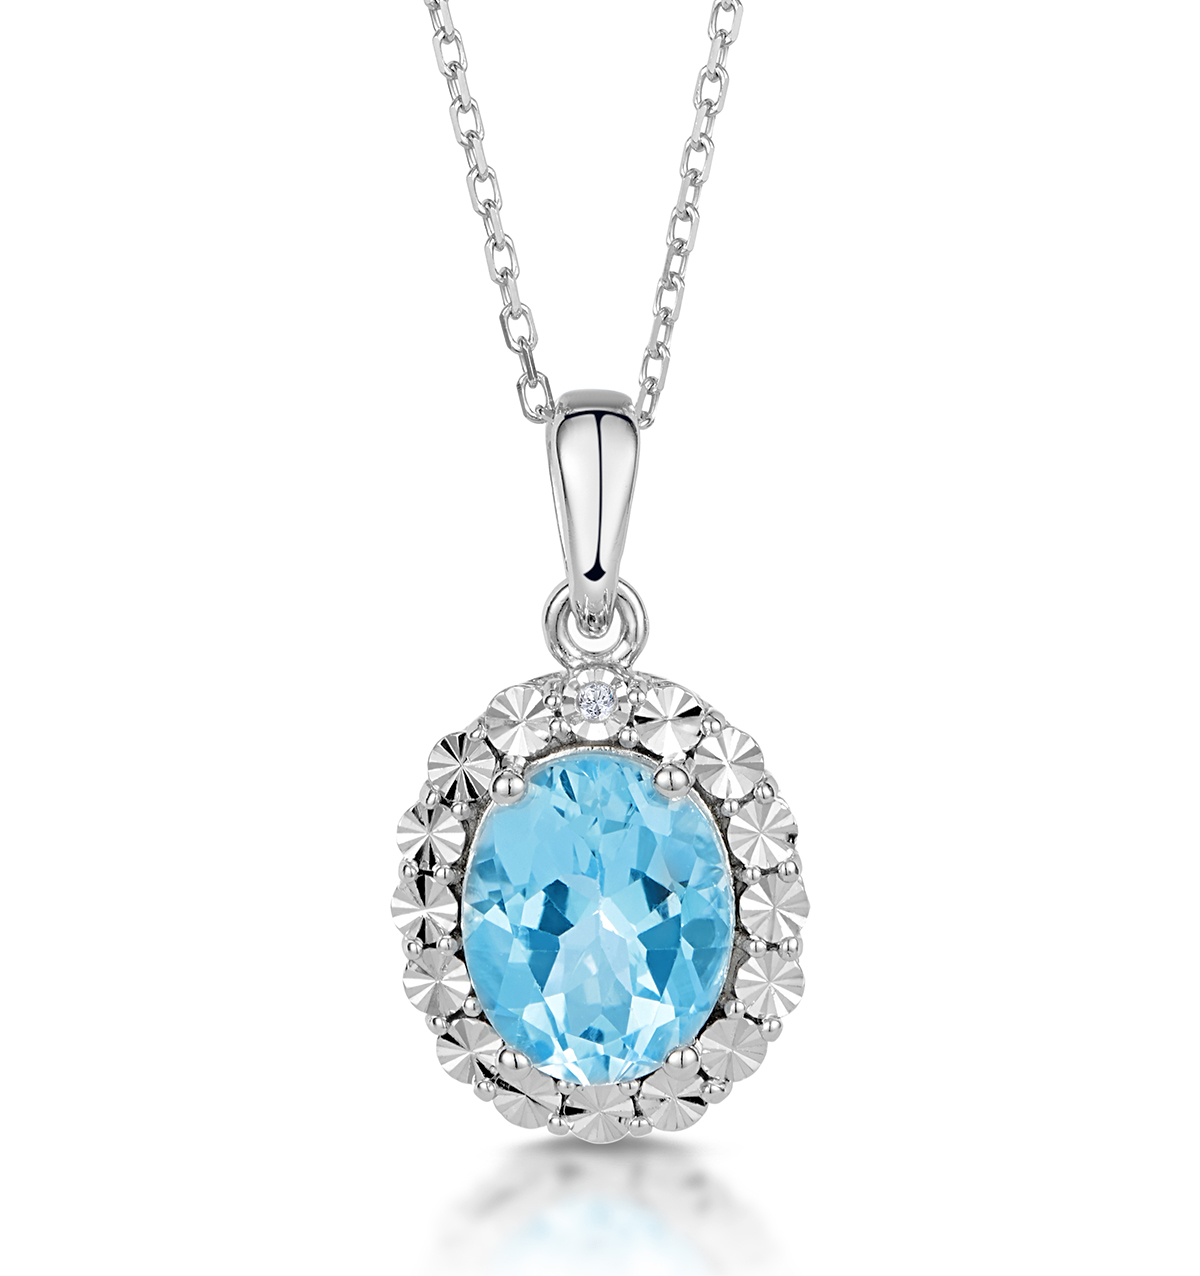 DIAMOND AND SILVER OVAL NECKLACE 2.40CT BLUE TOPAZ - TESORO COLLECTION